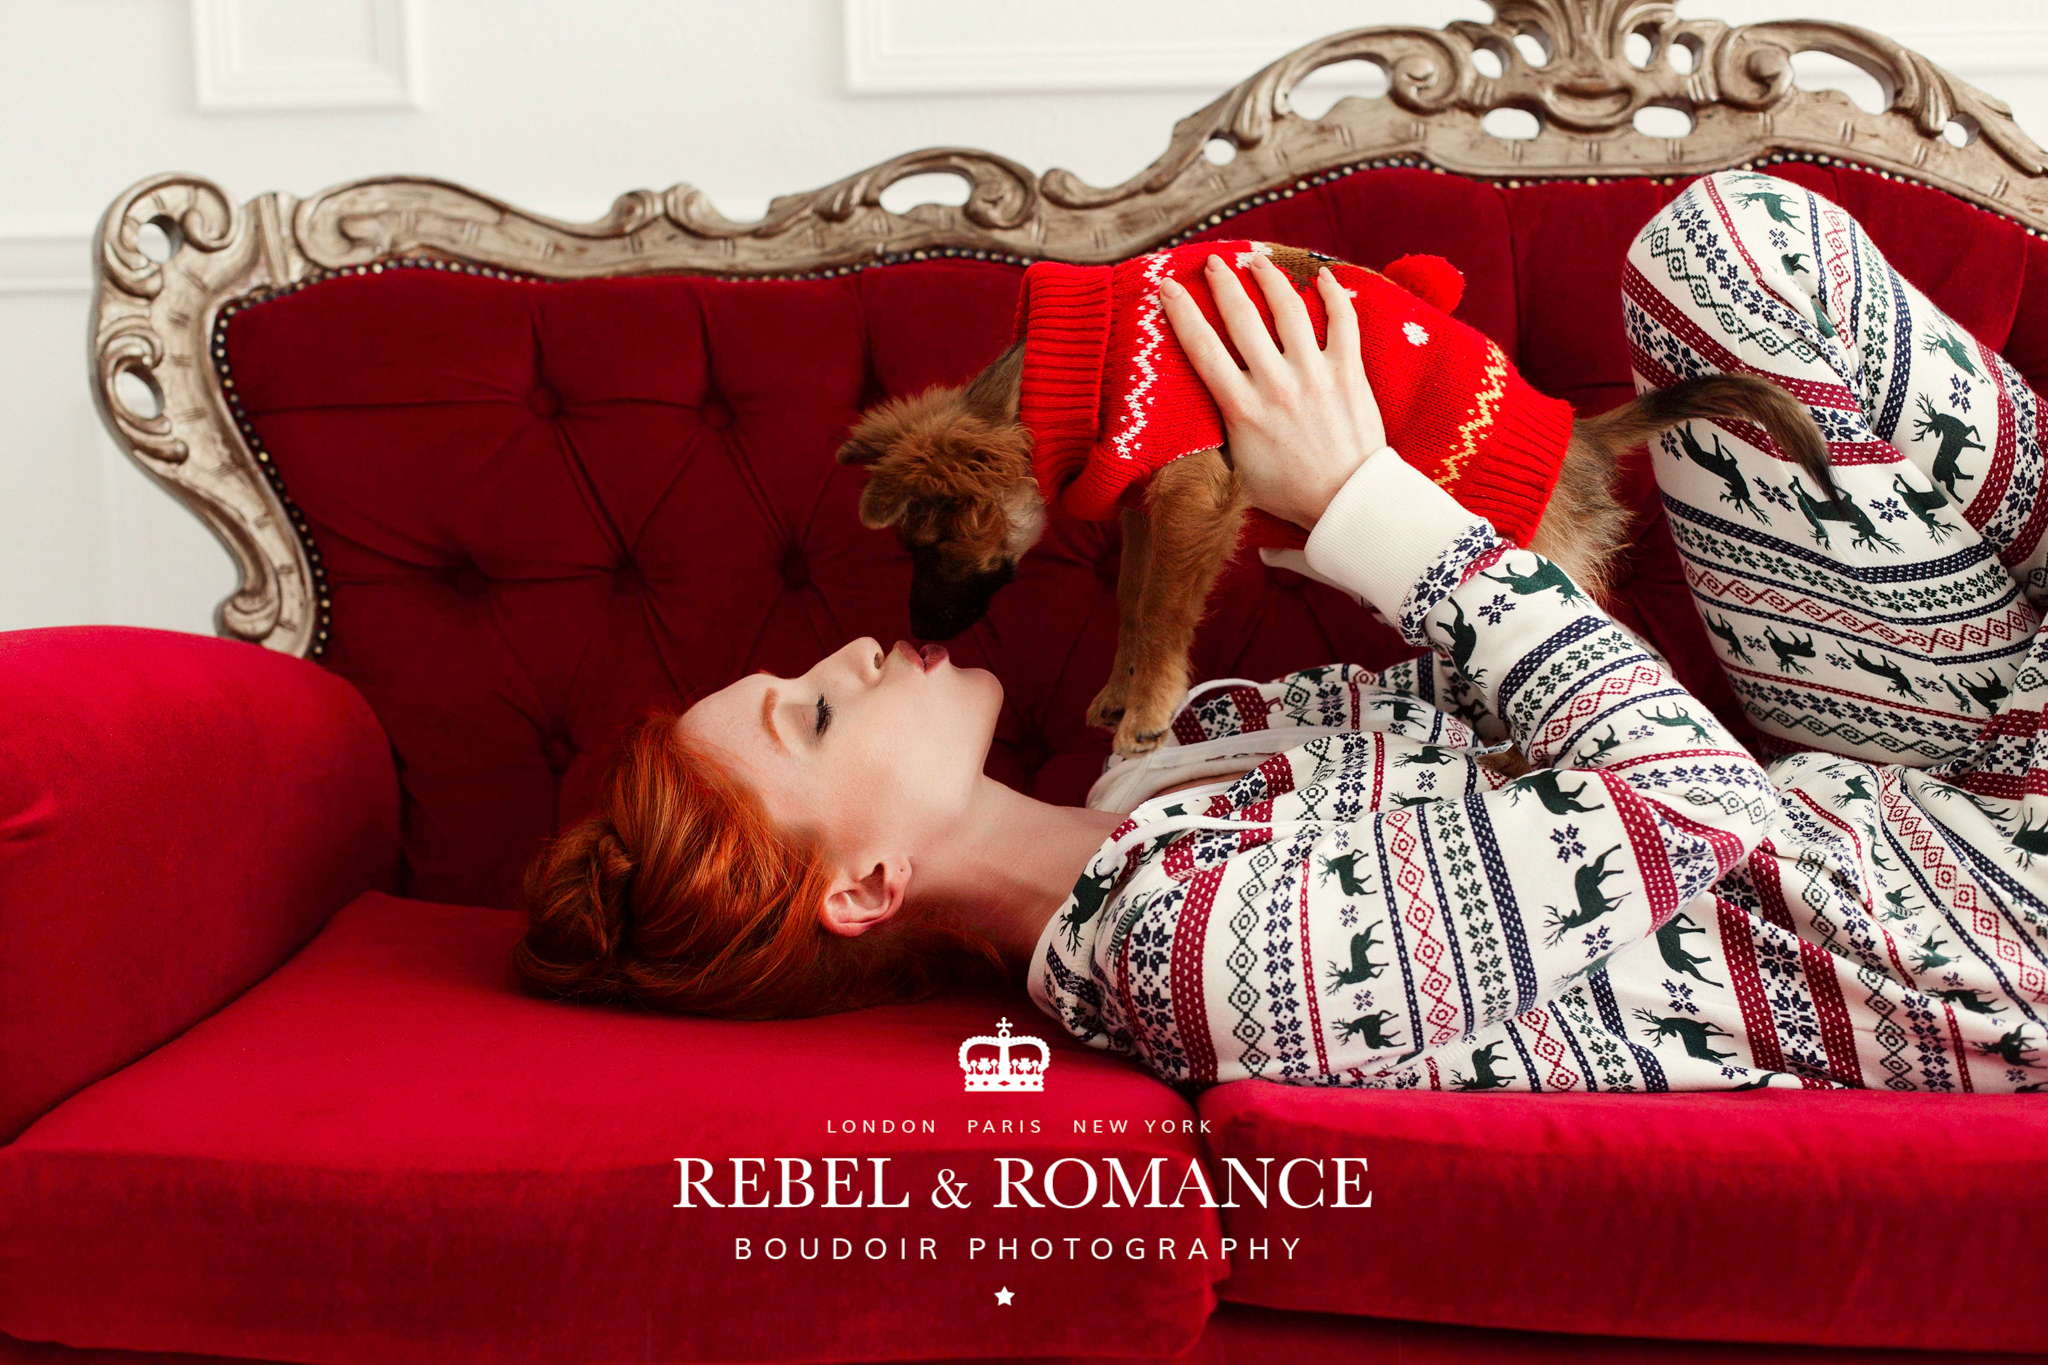 Holiday kisses:) Loved having these two in the Rebel & Romance Boudoir Studio.